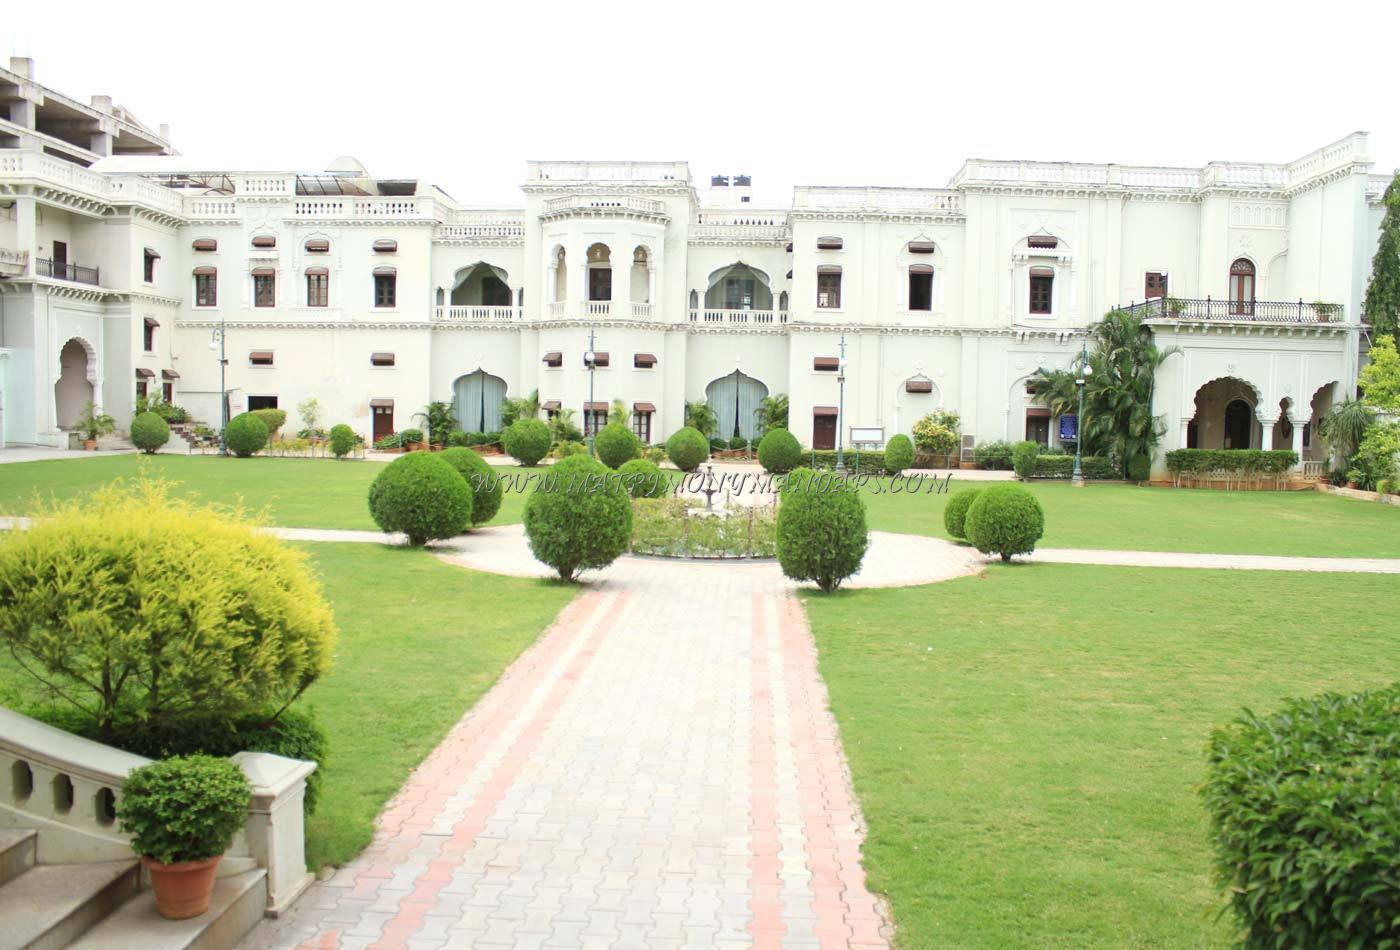 Chiraan Fort Club - Main Lawn - Pre-function Area